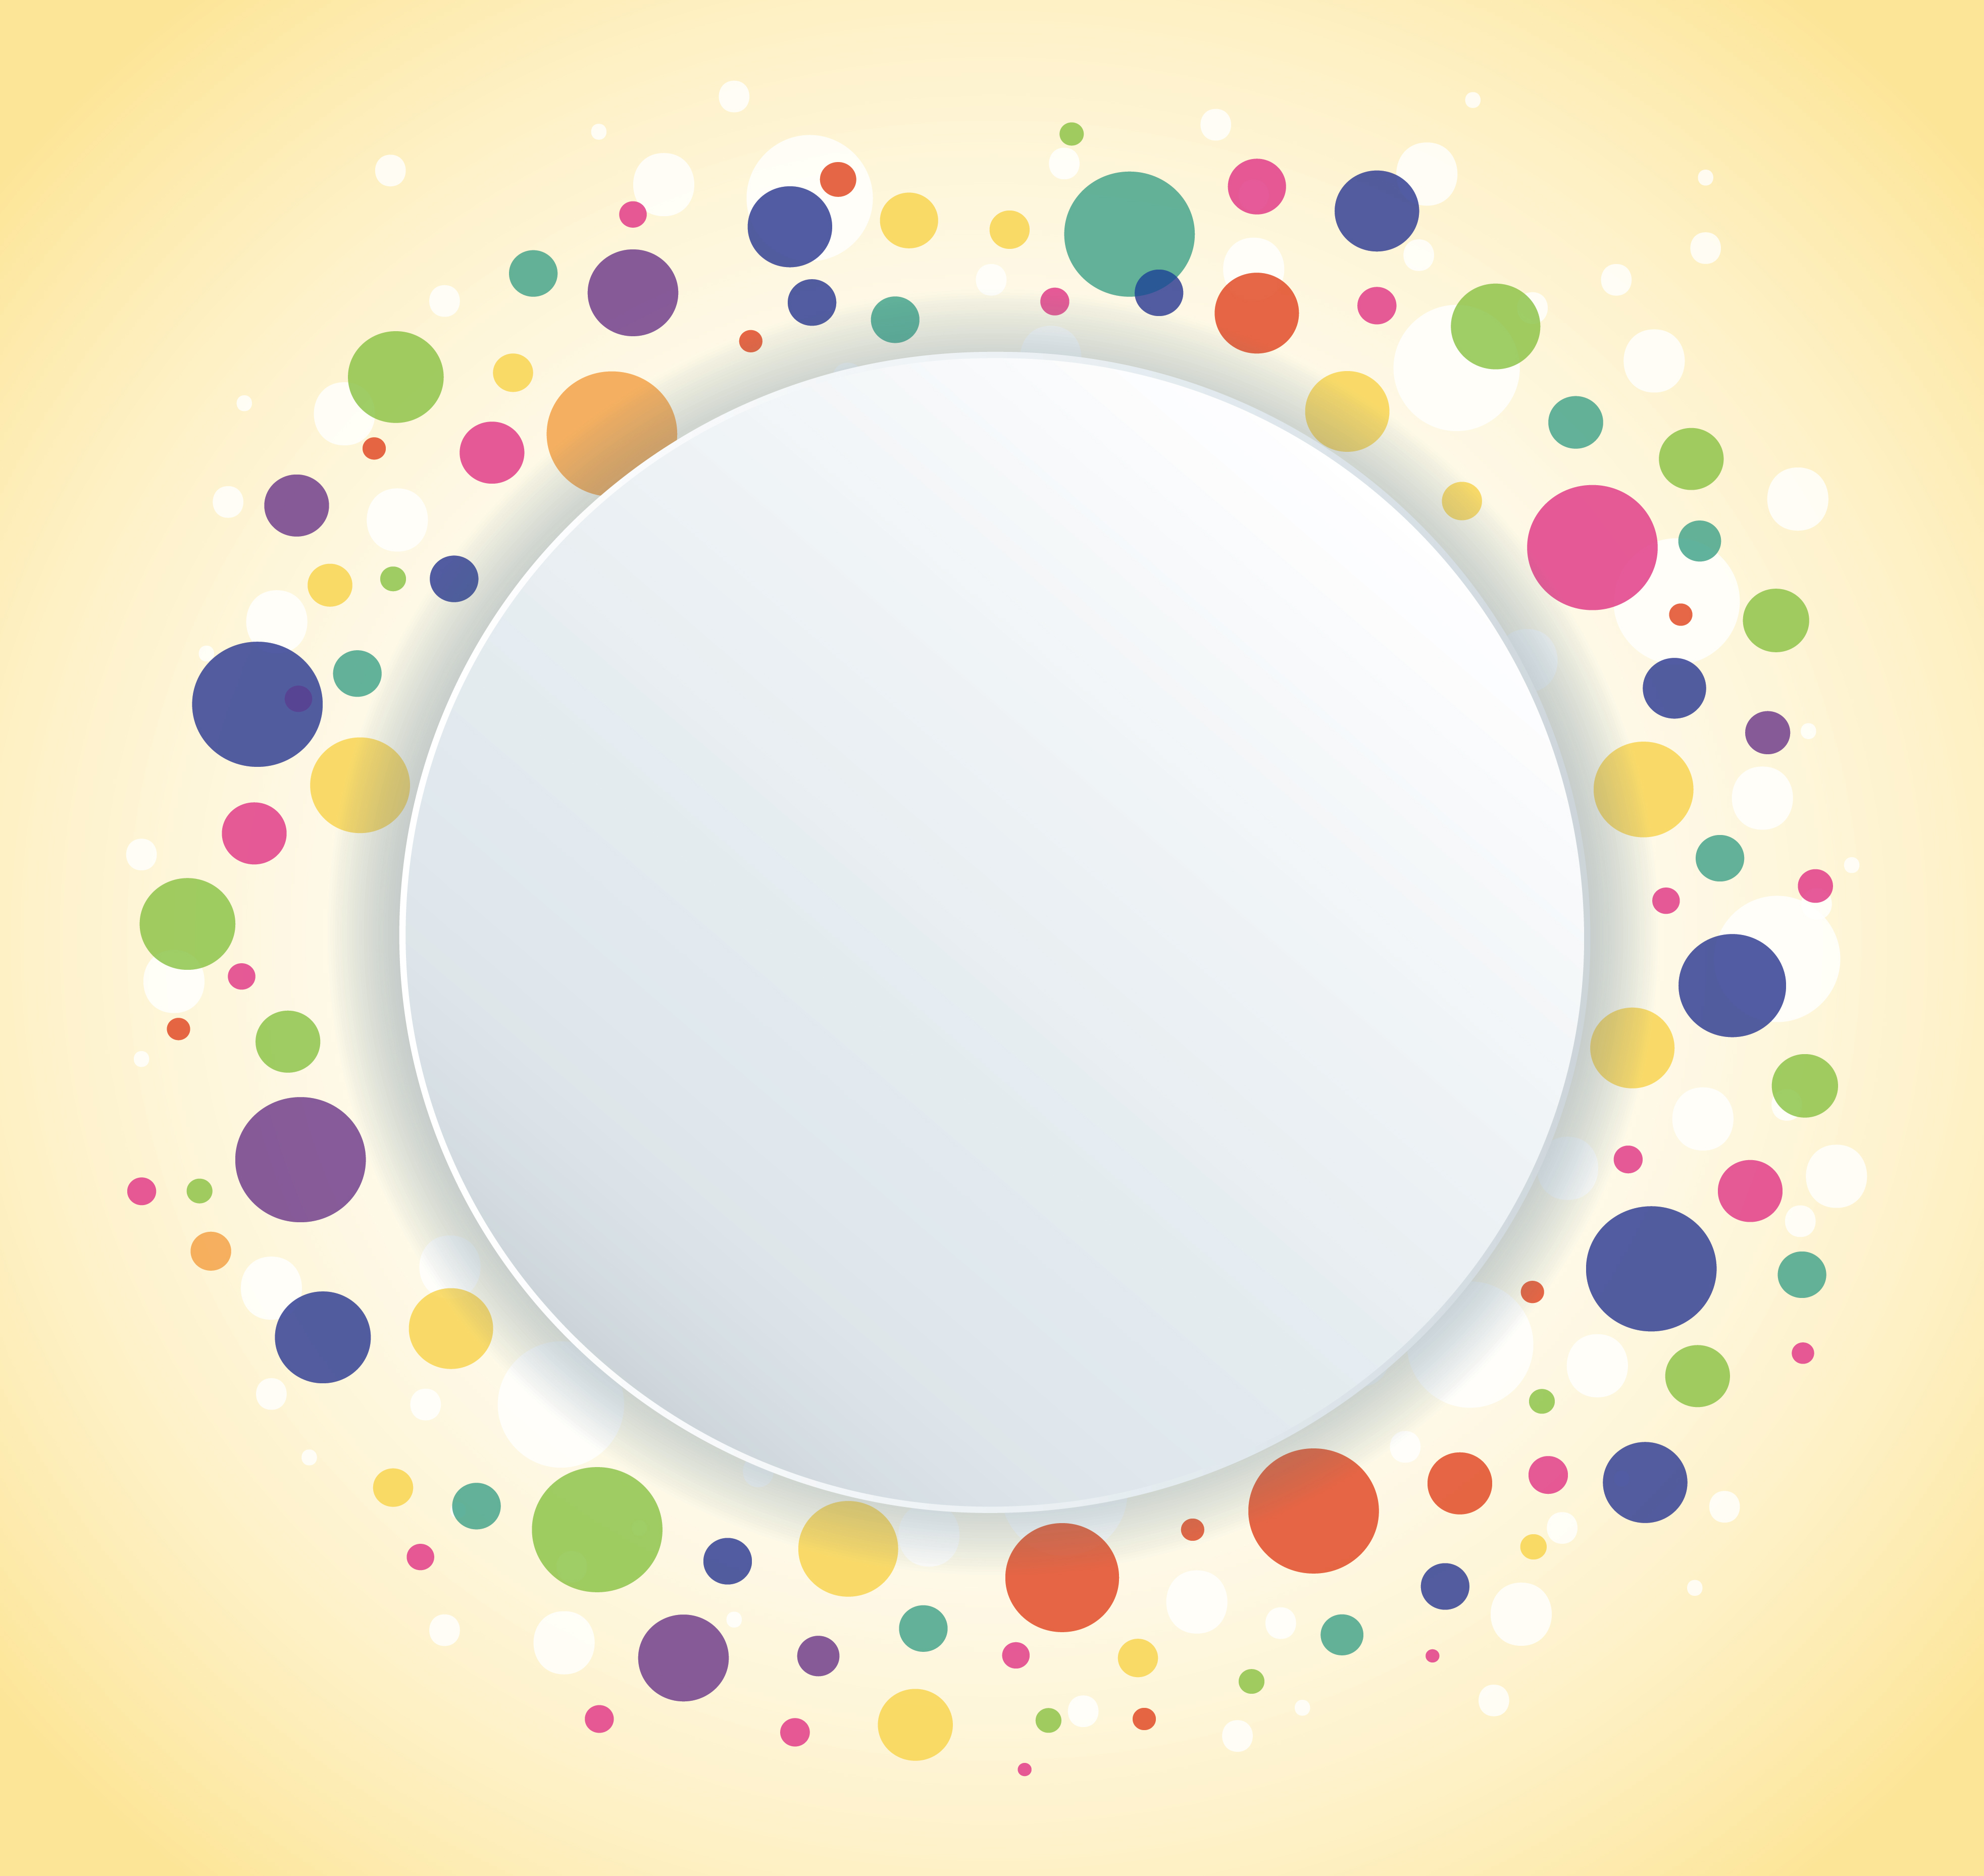 Abstract Round Logos:  Abstract Colorful Round Circle Background